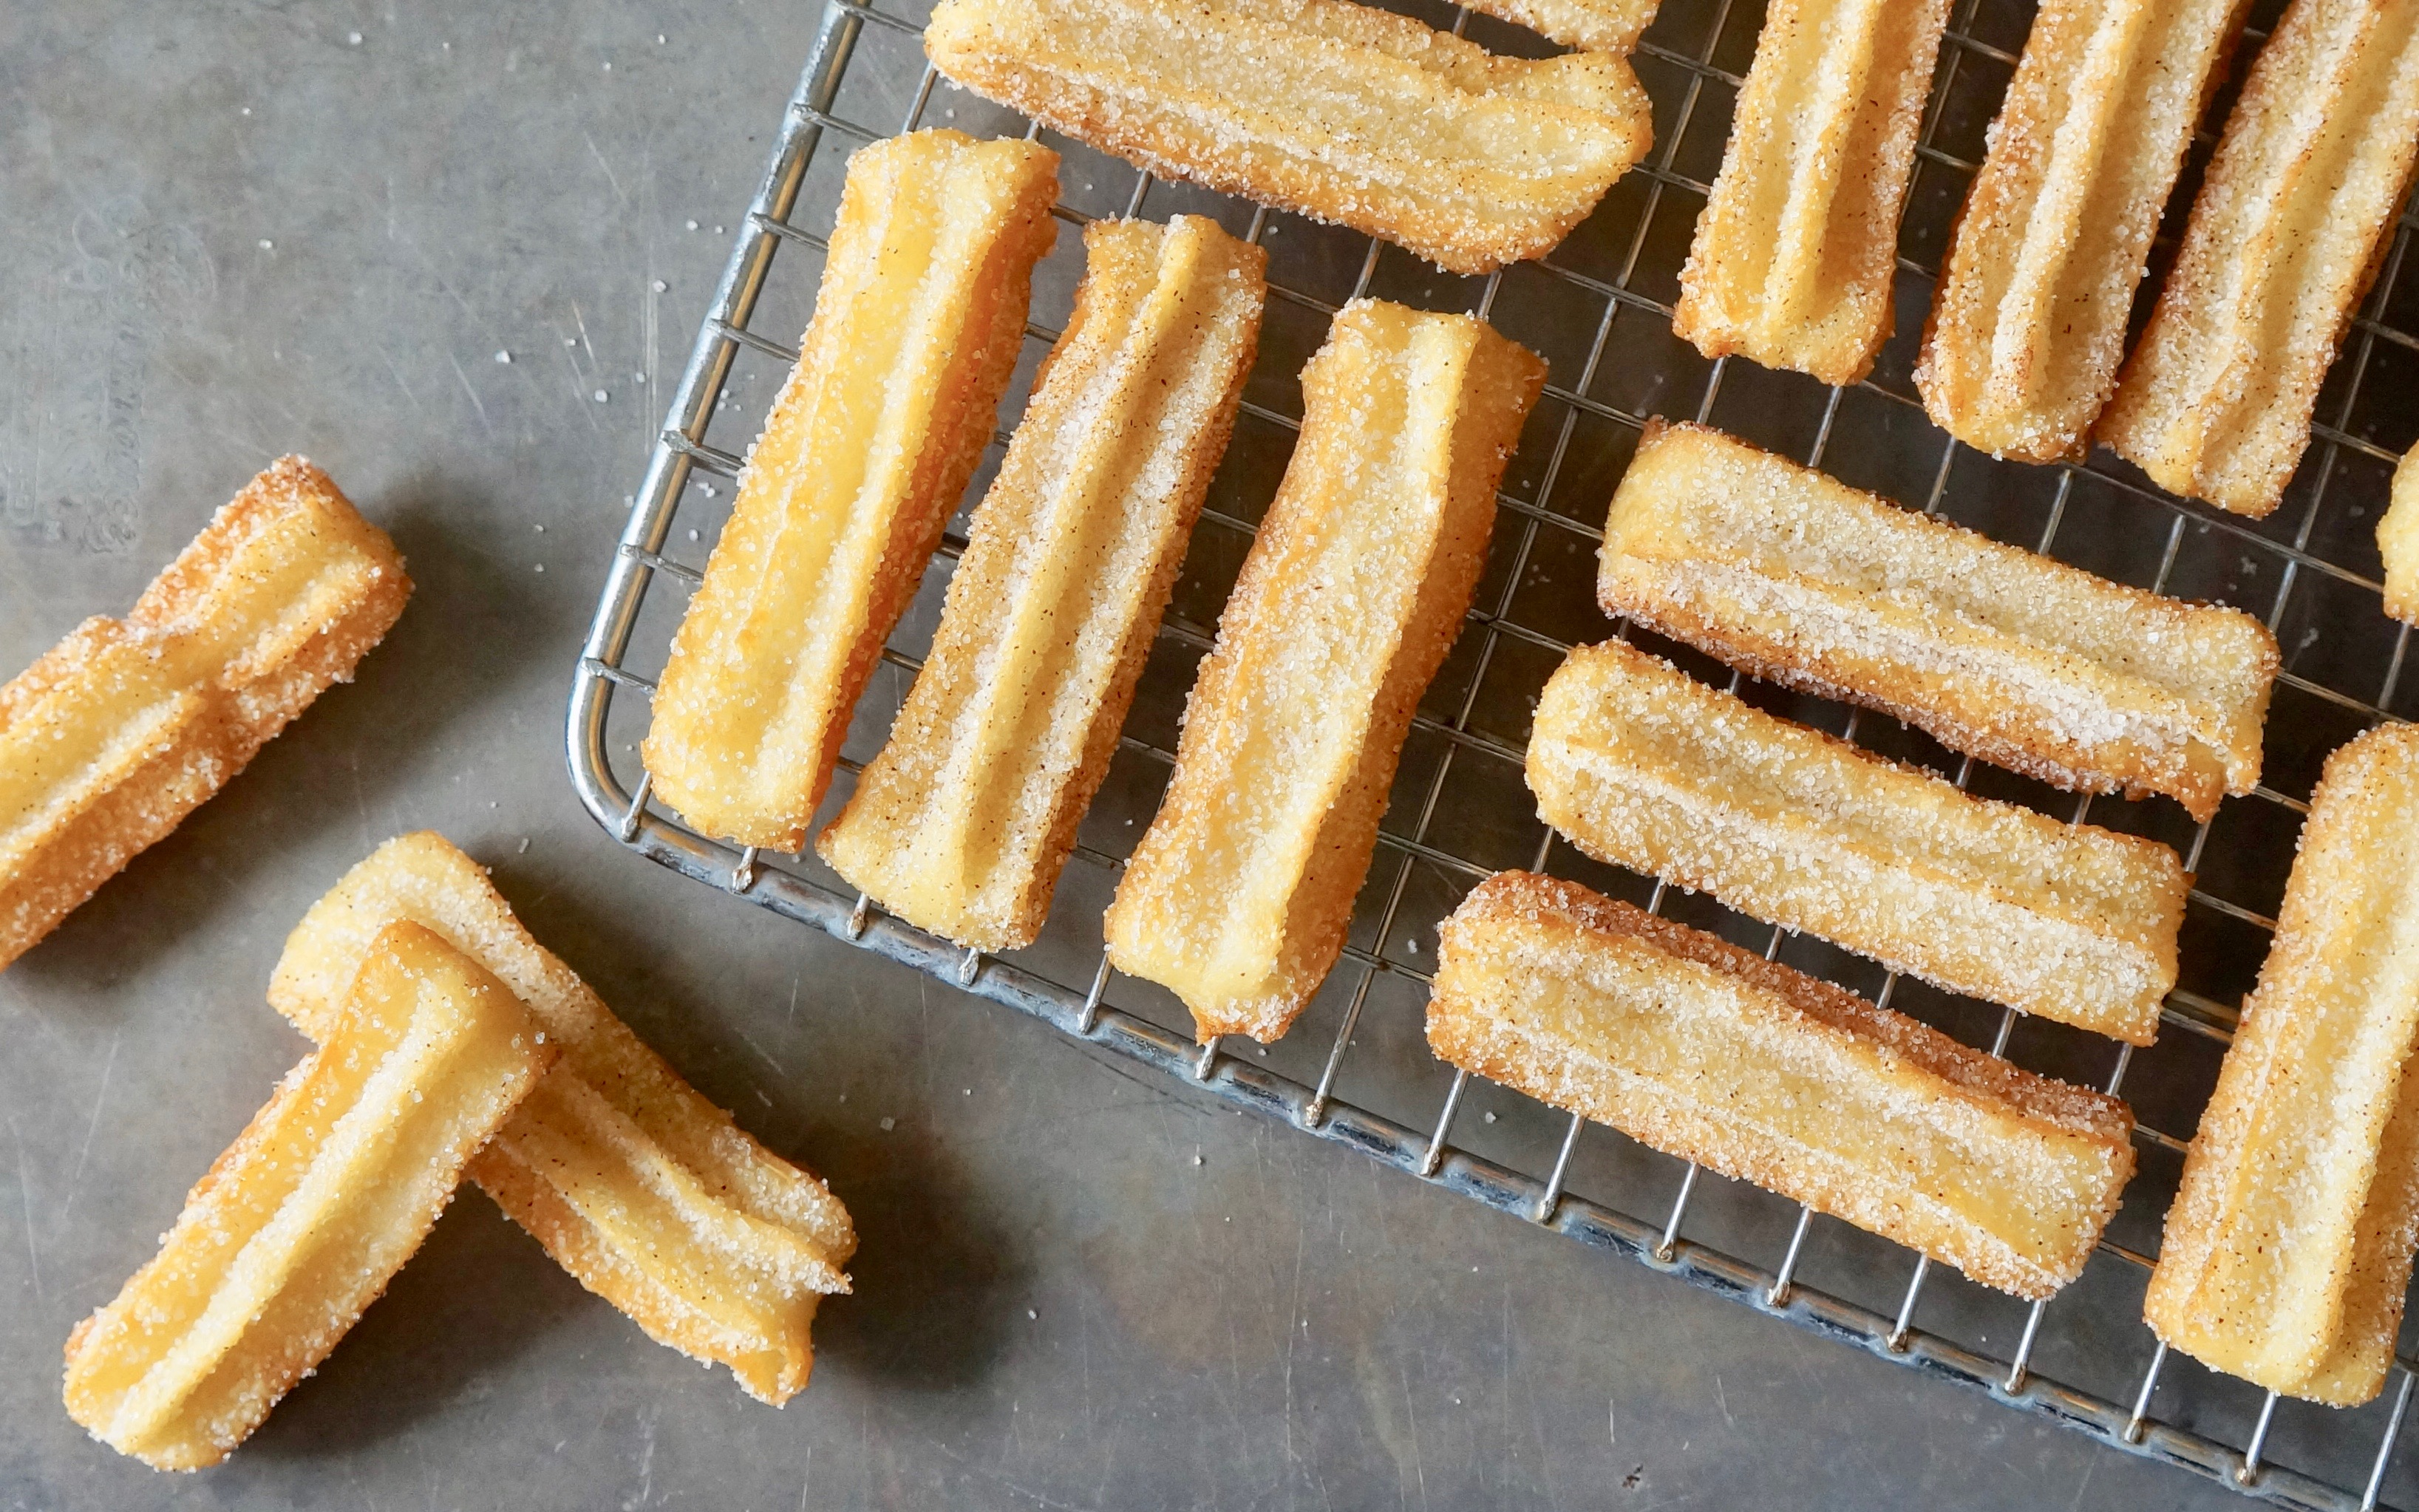 Frying-Buttermilk-Churros-Mexican-Street-Food-Classics-Rebecca-Gordon-Editor-In-Chief-Buttermilk-Lipstick-Southern-Entertaining-RebeccaGordon-Pastry-Chef-Southern-Hostess-Birmingham-Alabama